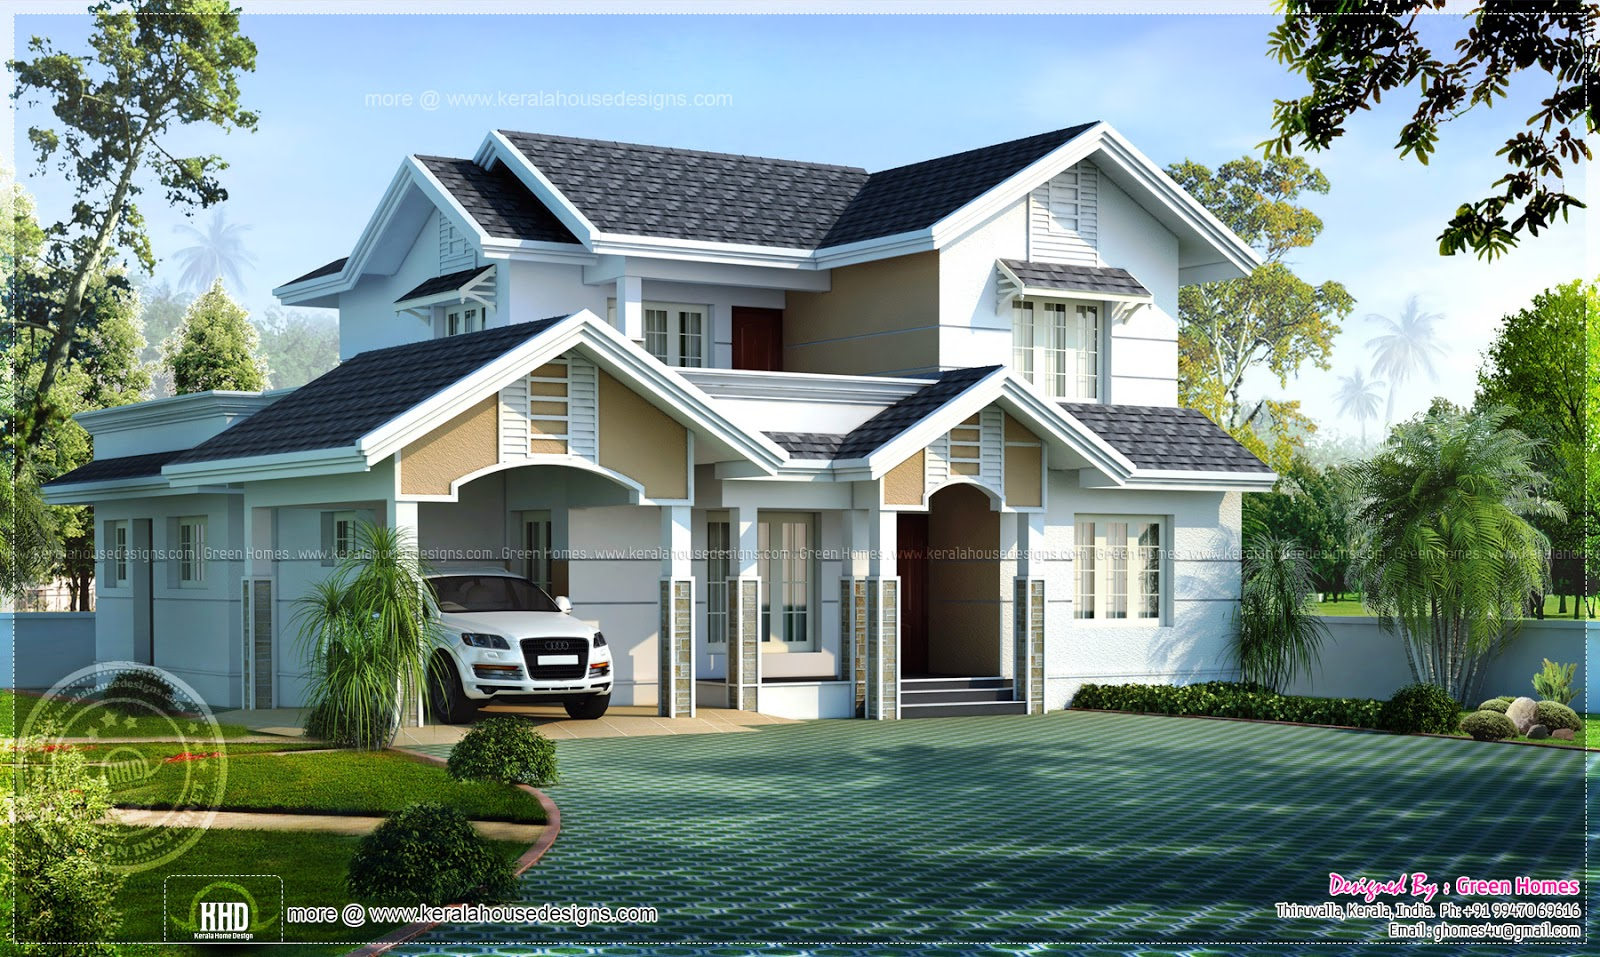 4 bedroom sloping roof home in 2236 sq feet home kerala On kerala sloped roof home design modern sober coloured